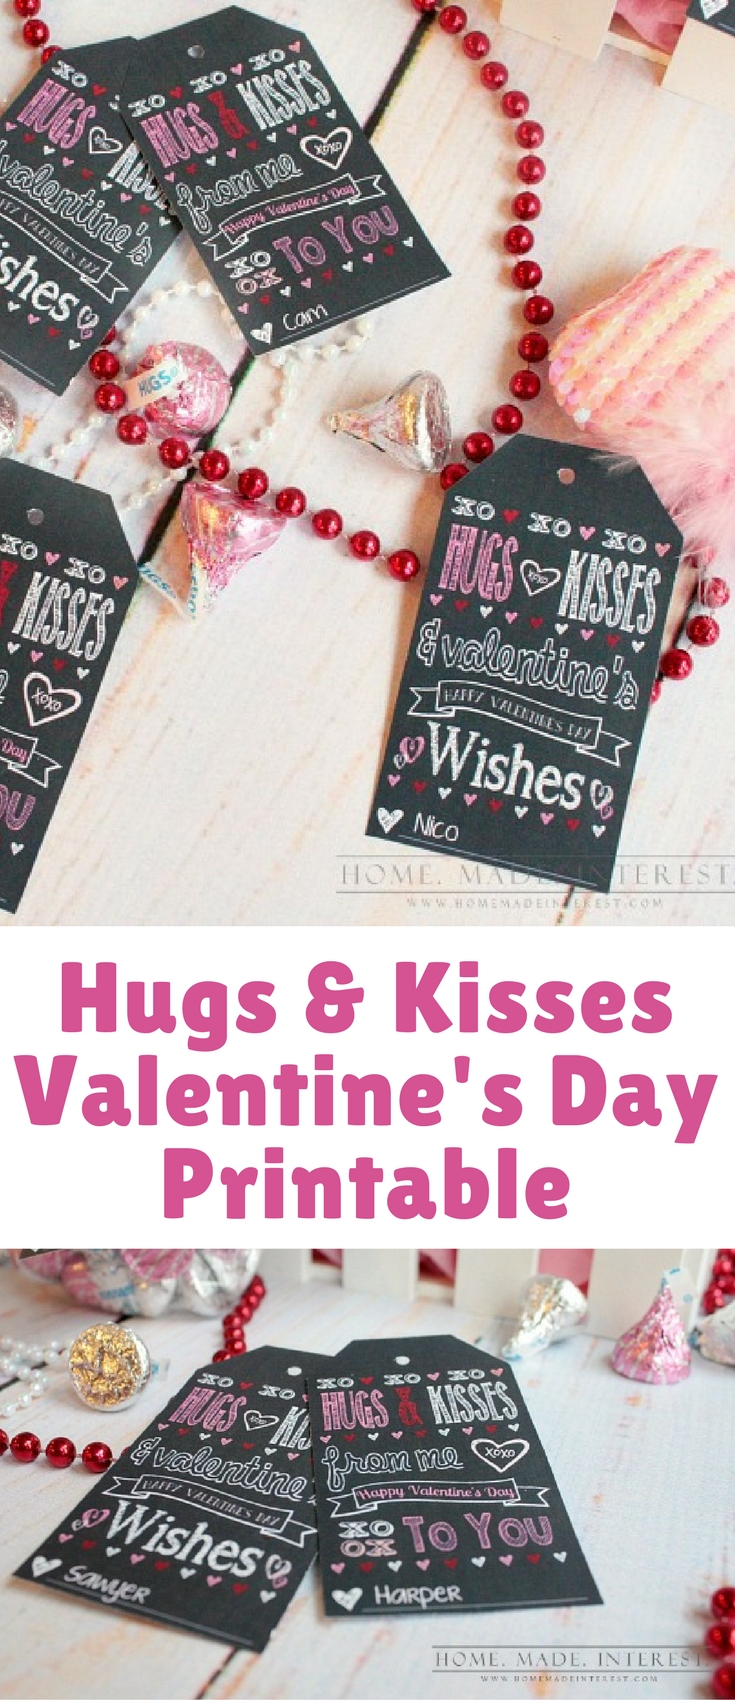 This Valentine's Day Printable Gift Tag can be personalized, just type in a name at the bottom before printing. Perfect for when you have a classroom of kids to make favors for!